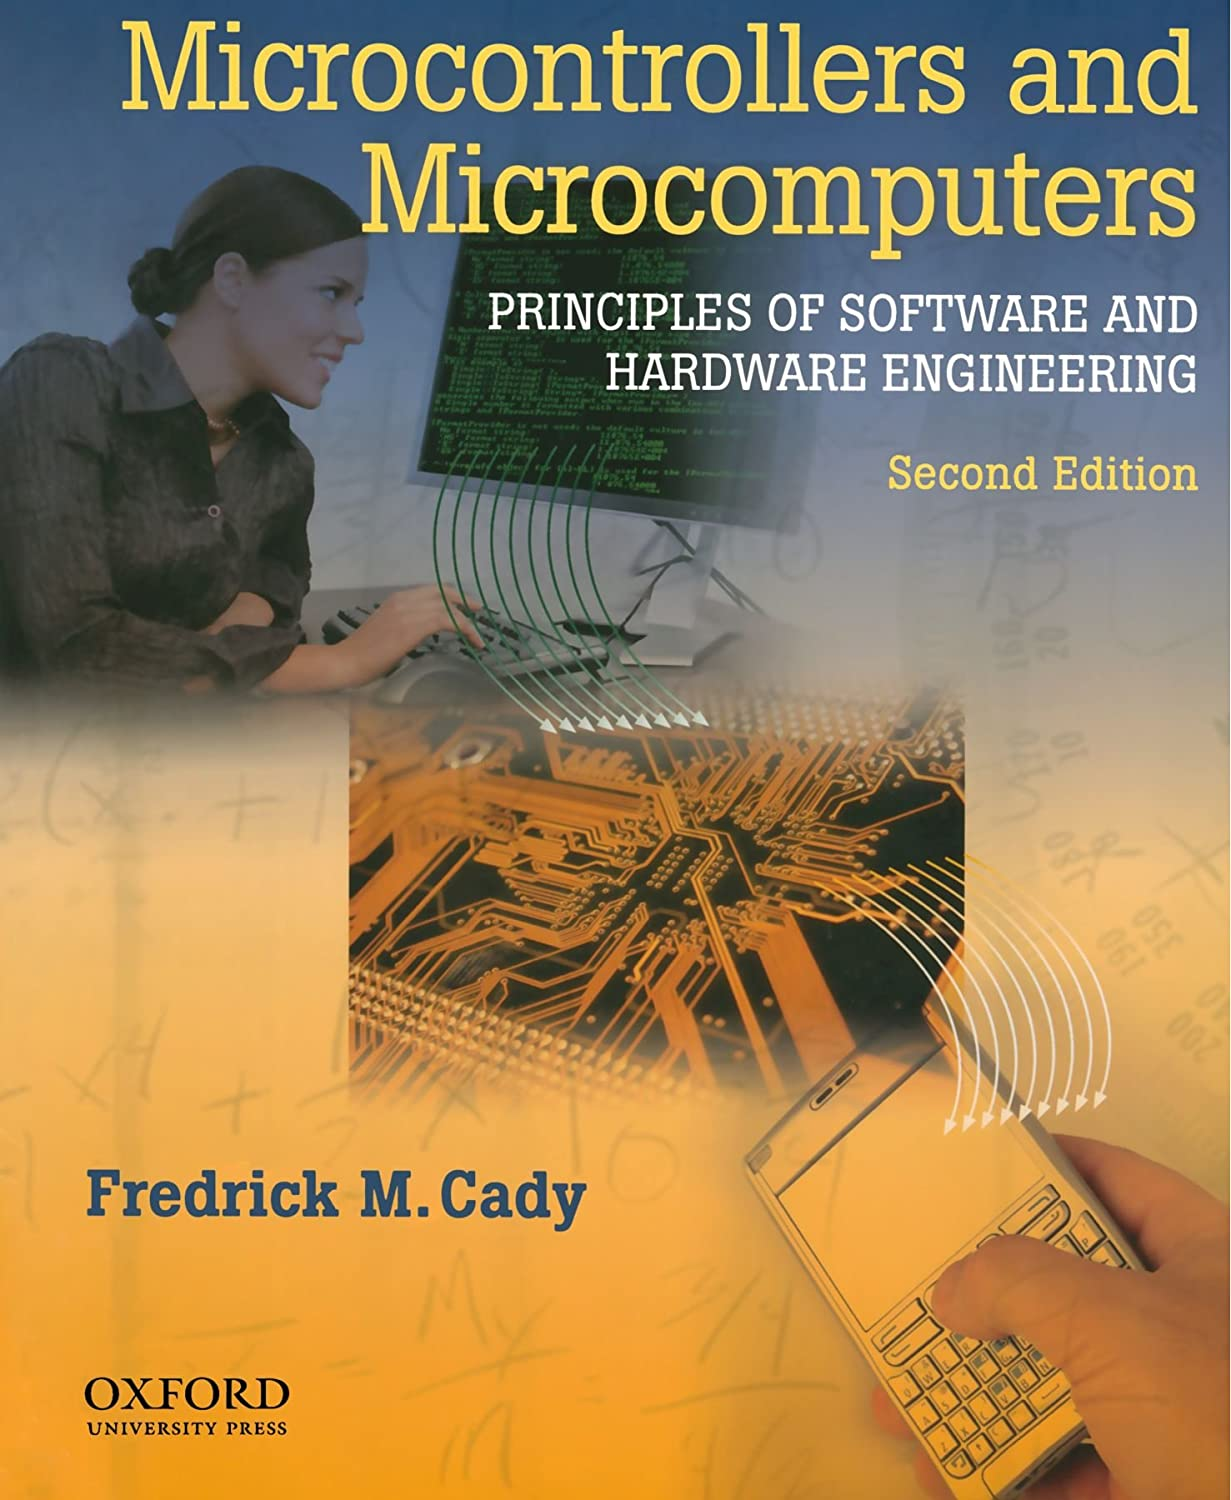 Microcontrollers and Microcomputers Principles of Software and Hardware Engineering Fredrick M. Cady